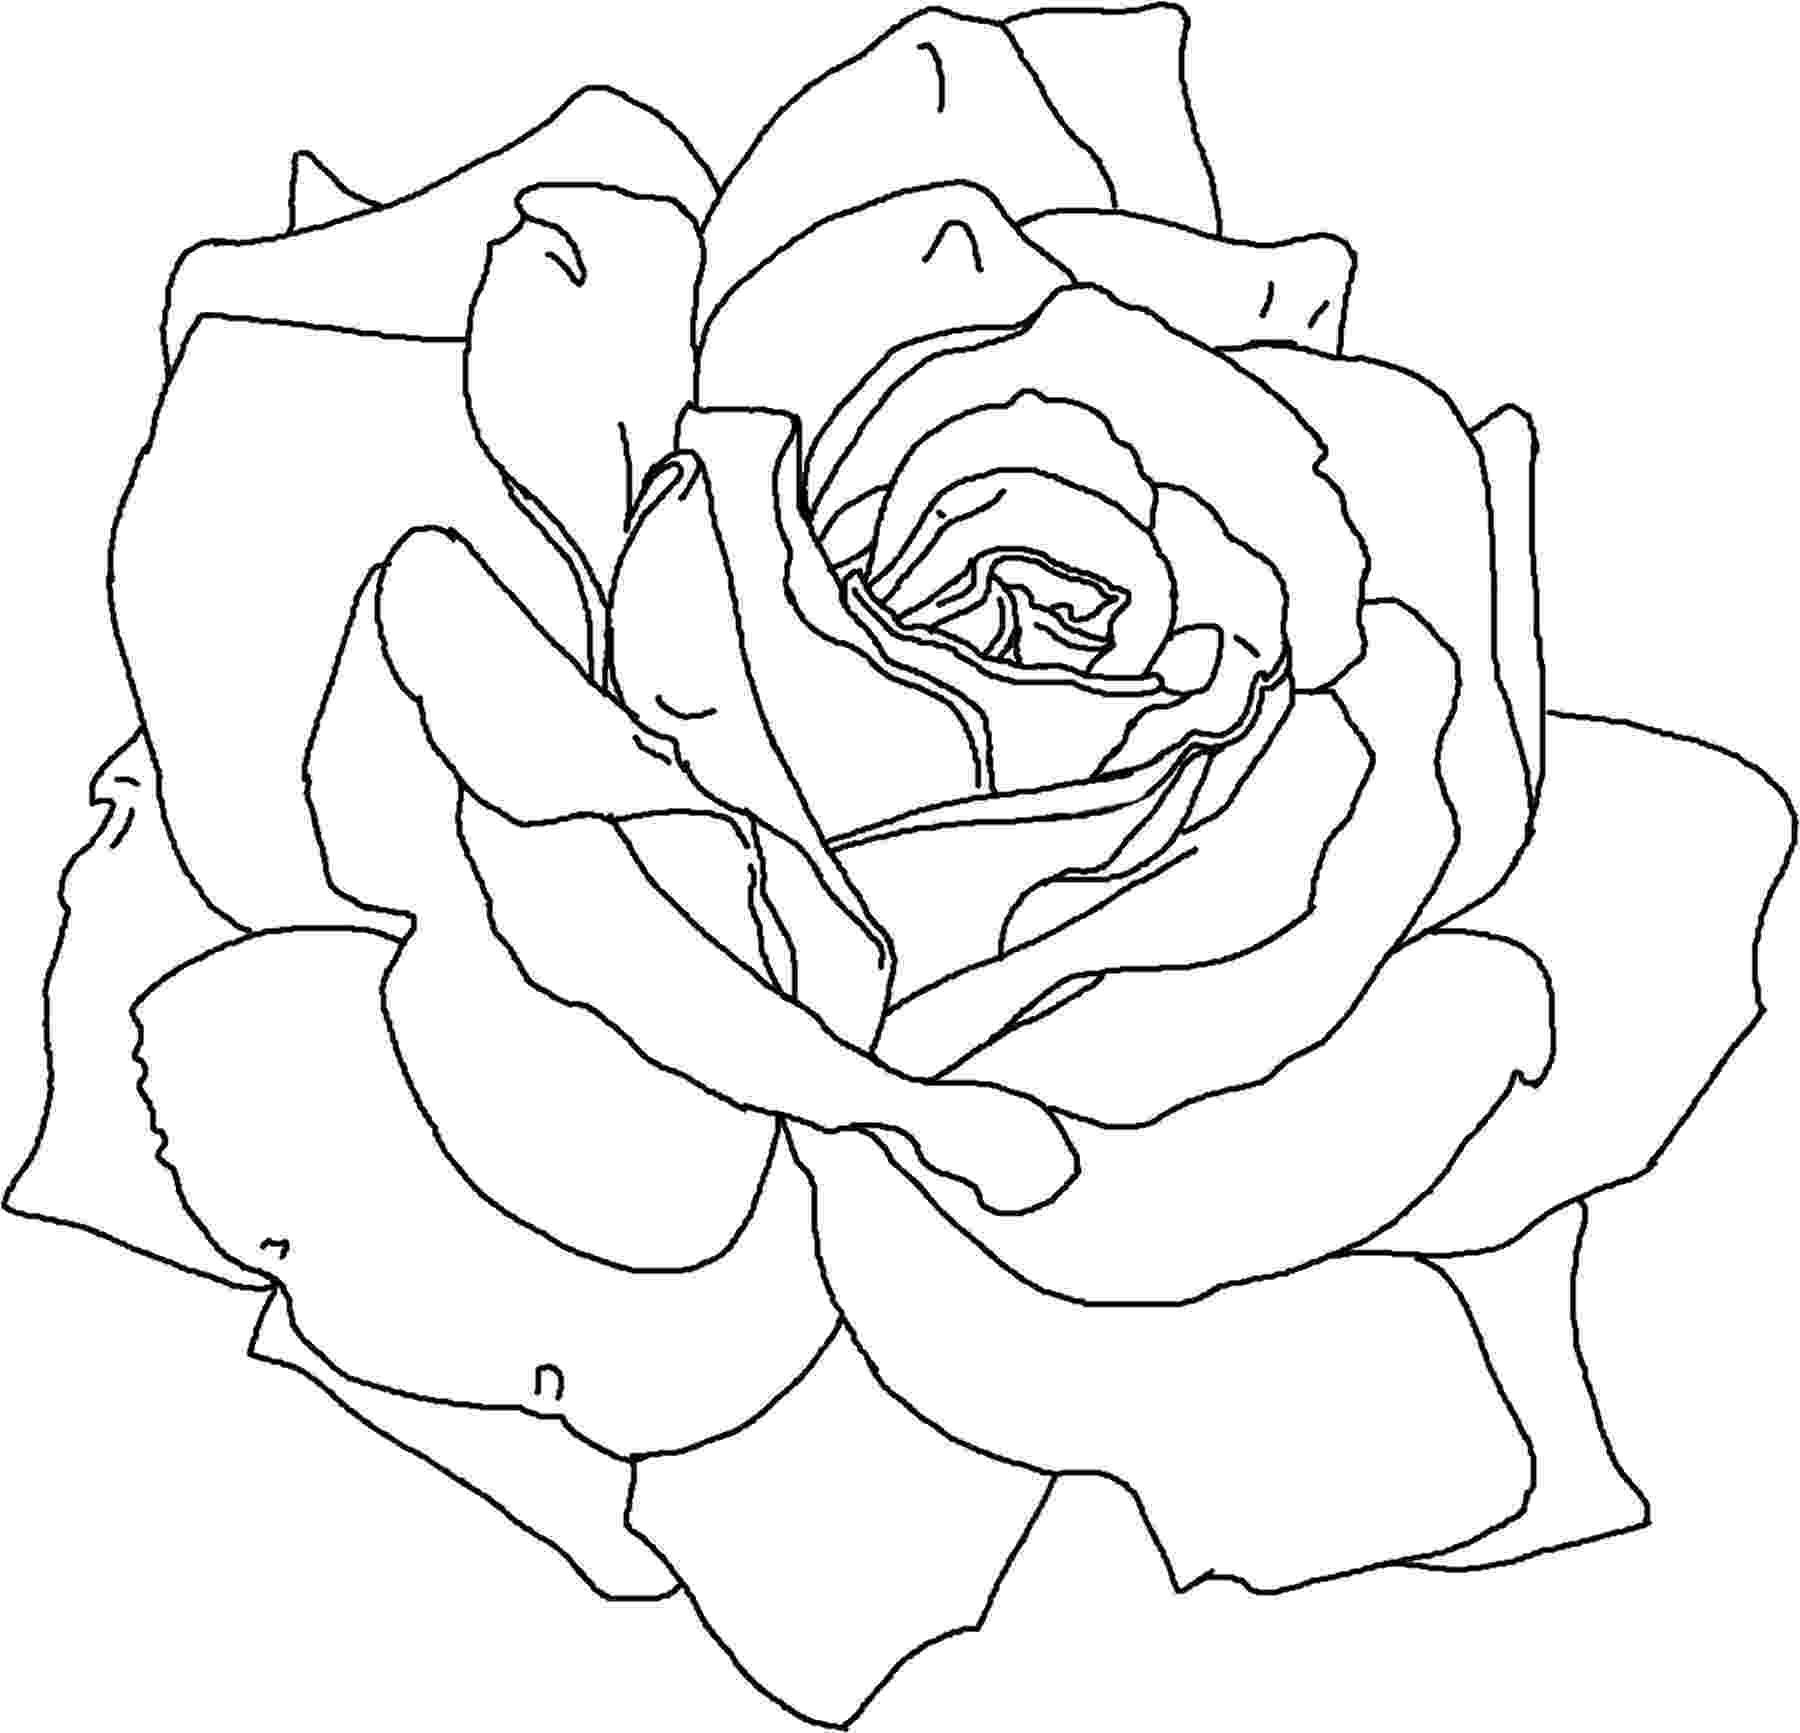 colouring pictures of roses free printable roses coloring pages for kids pictures colouring roses of